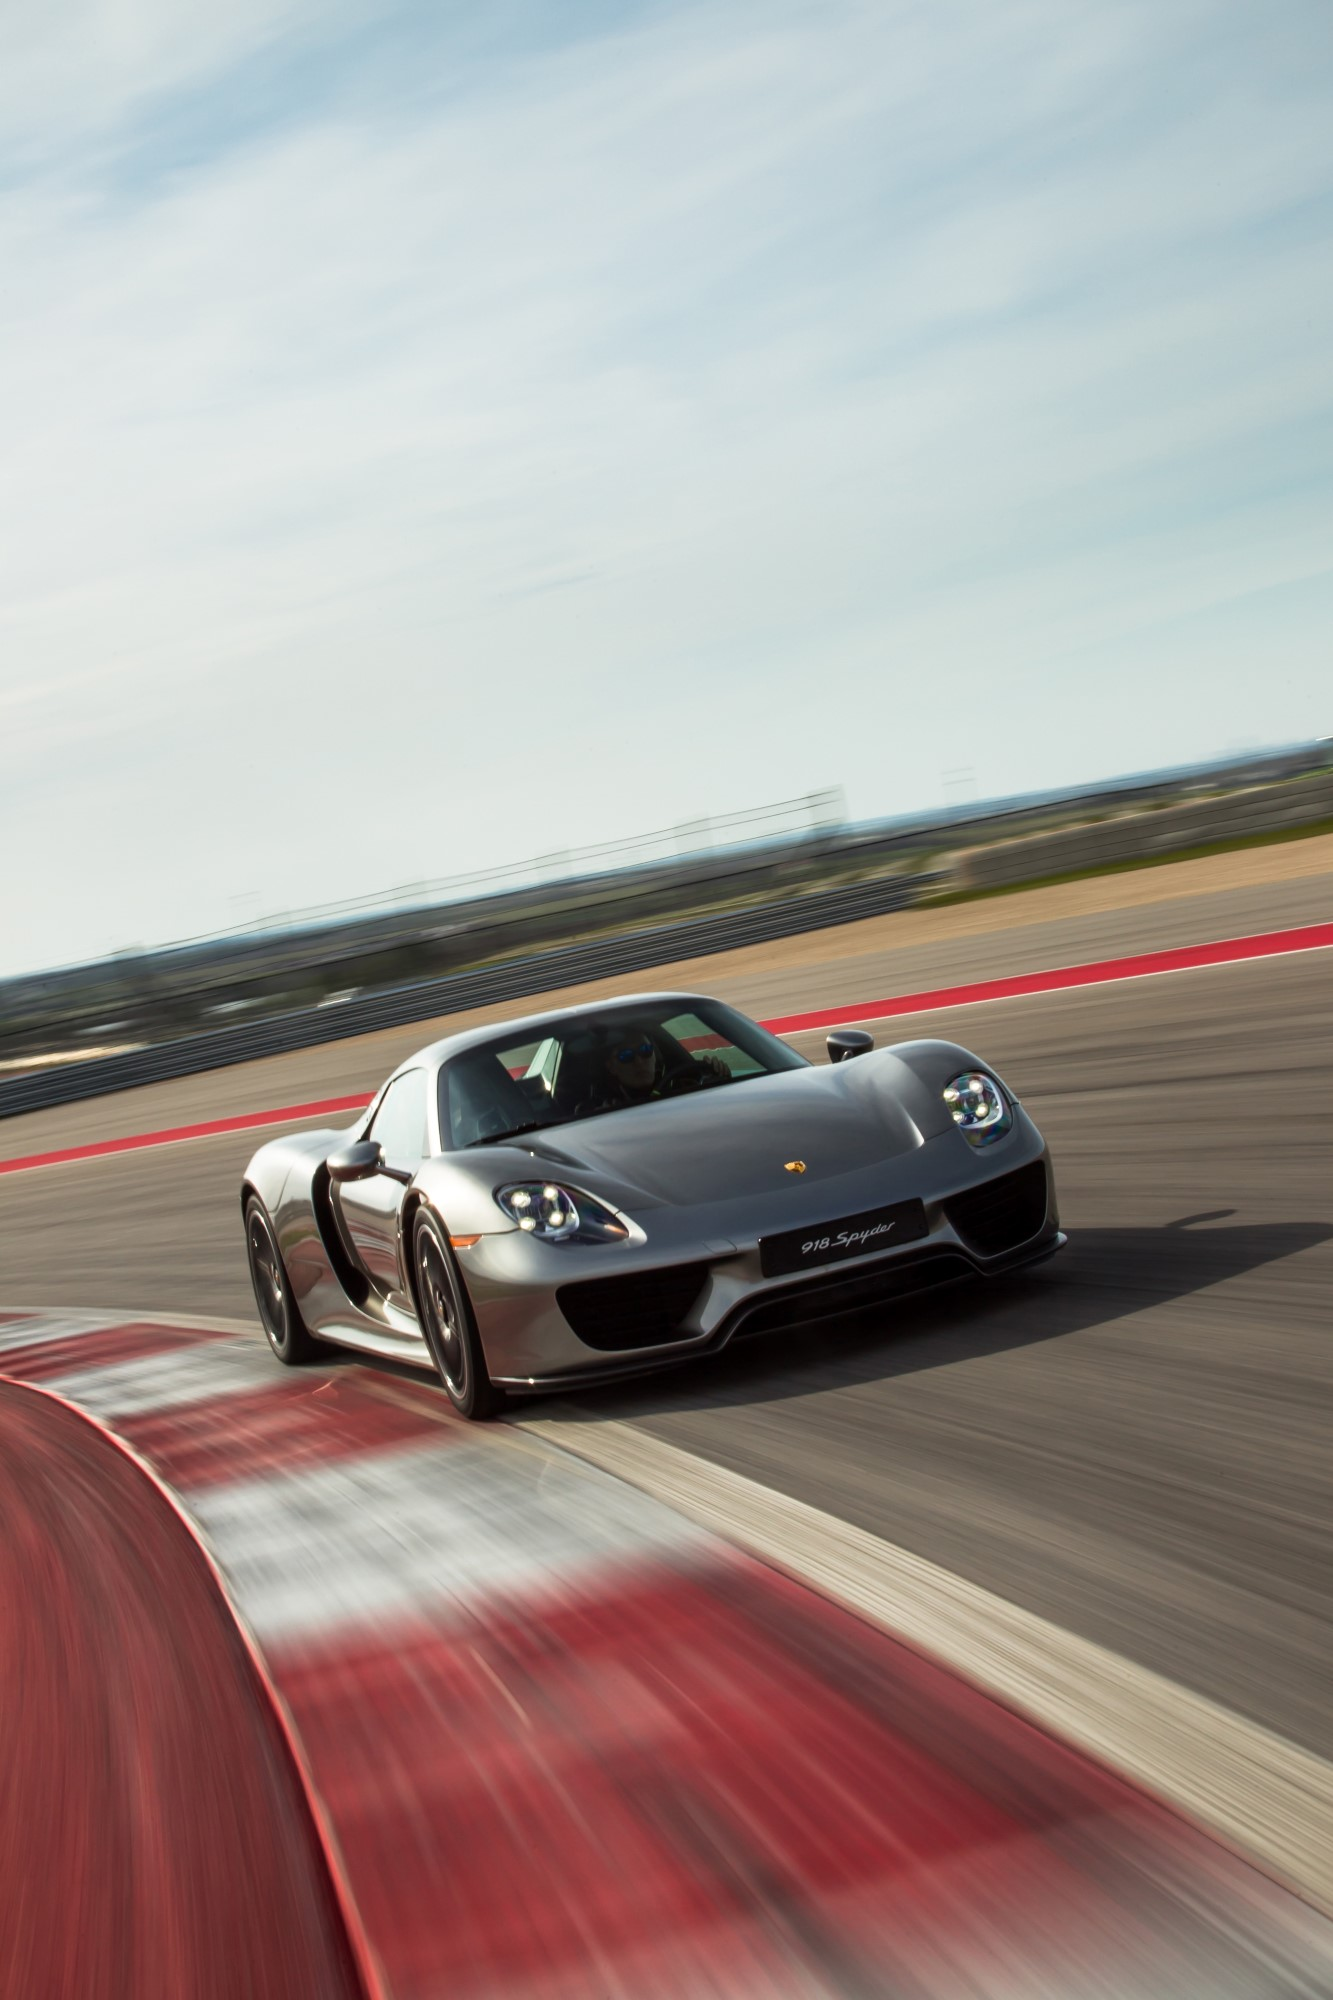 Used Aston Martin >> 2015 Porsche 918 Spyder Review, Ratings, Specs, Prices, and Photos - The Car Connection